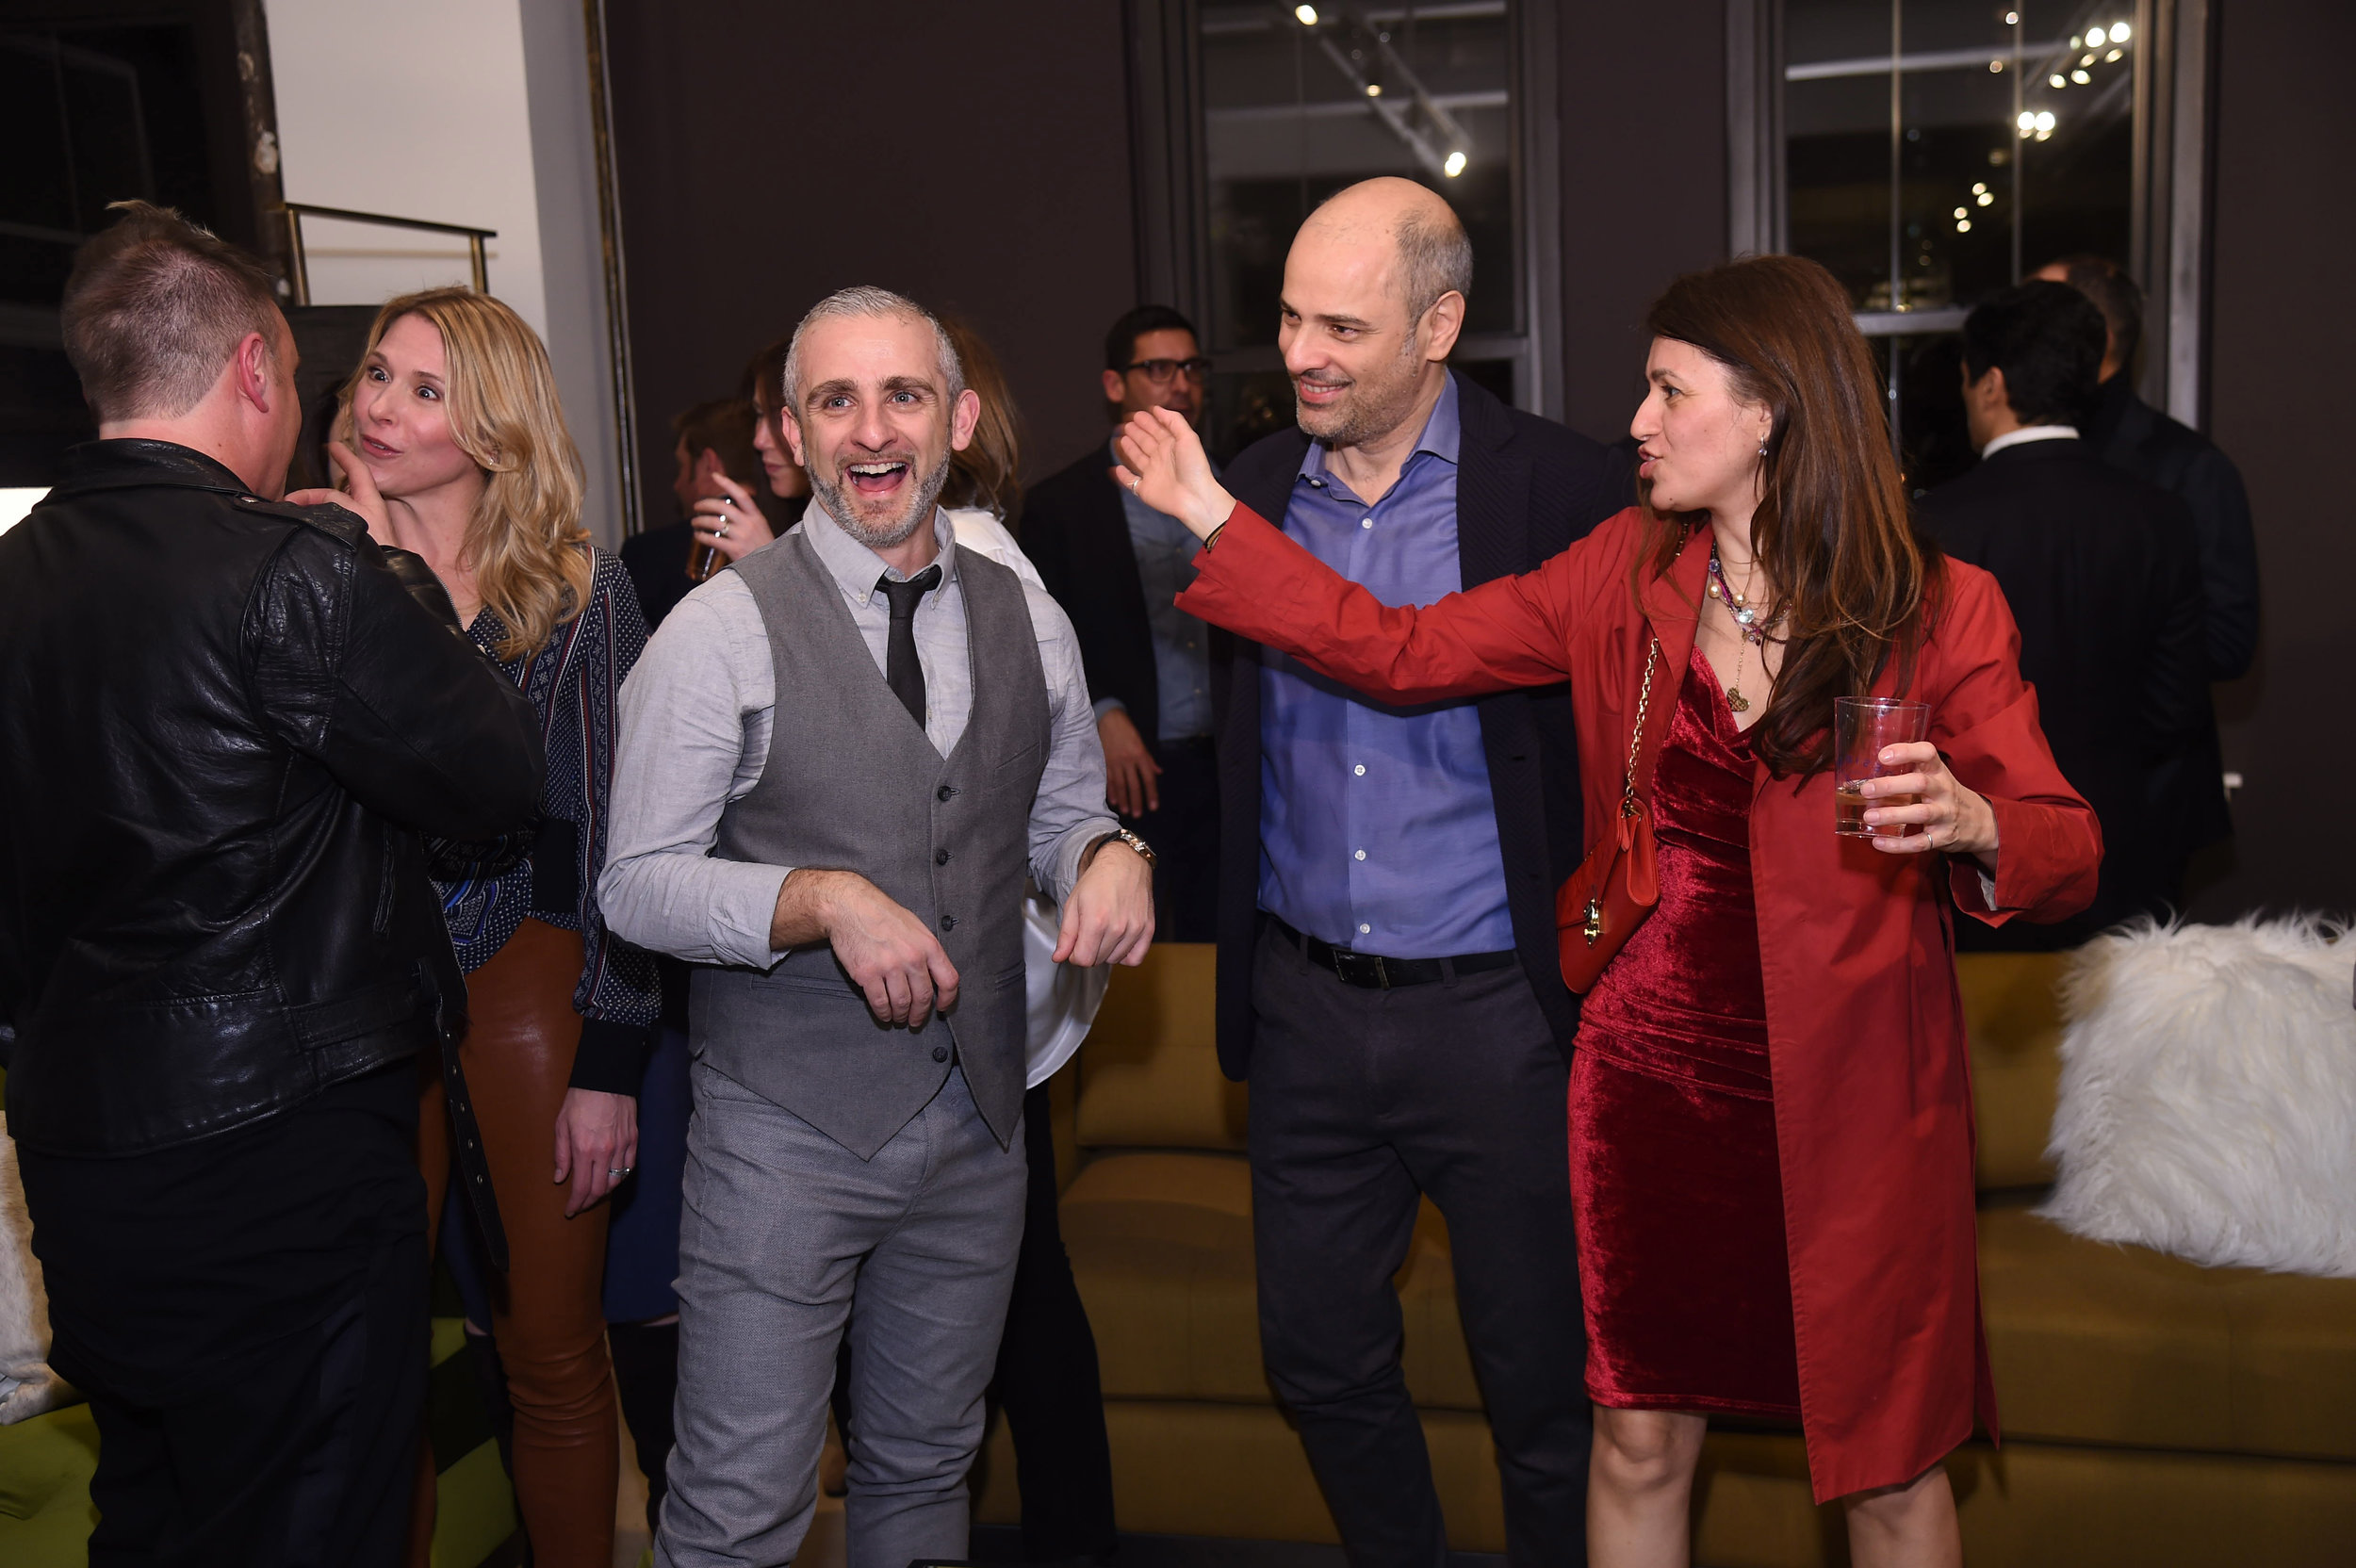 design-on-a-dime-nyc-2017-kick-off-party_32519720104_o.jpg